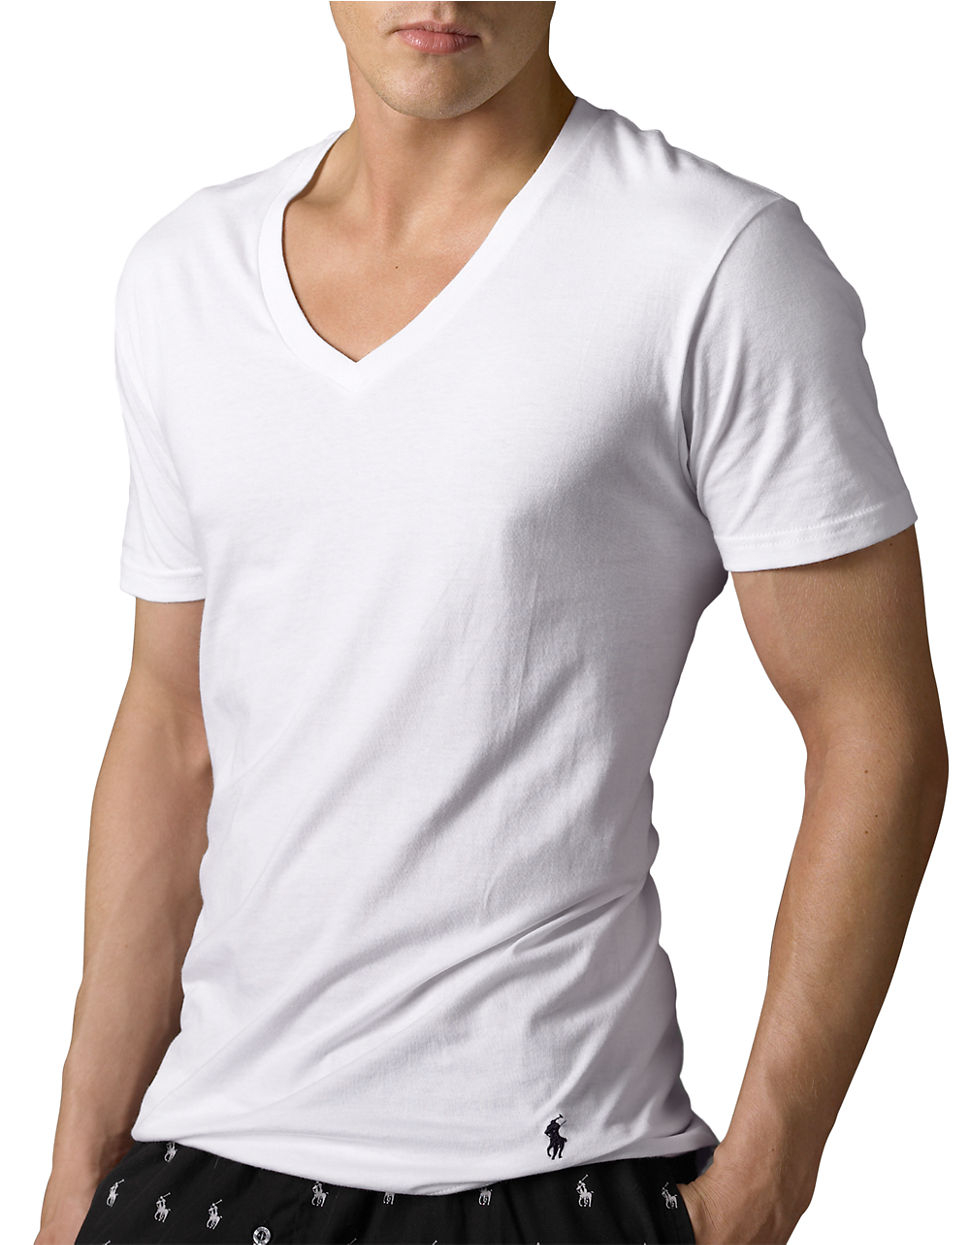 Polo ralph lauren big and tall classic cotton v neck t for Tall v neck t shirts